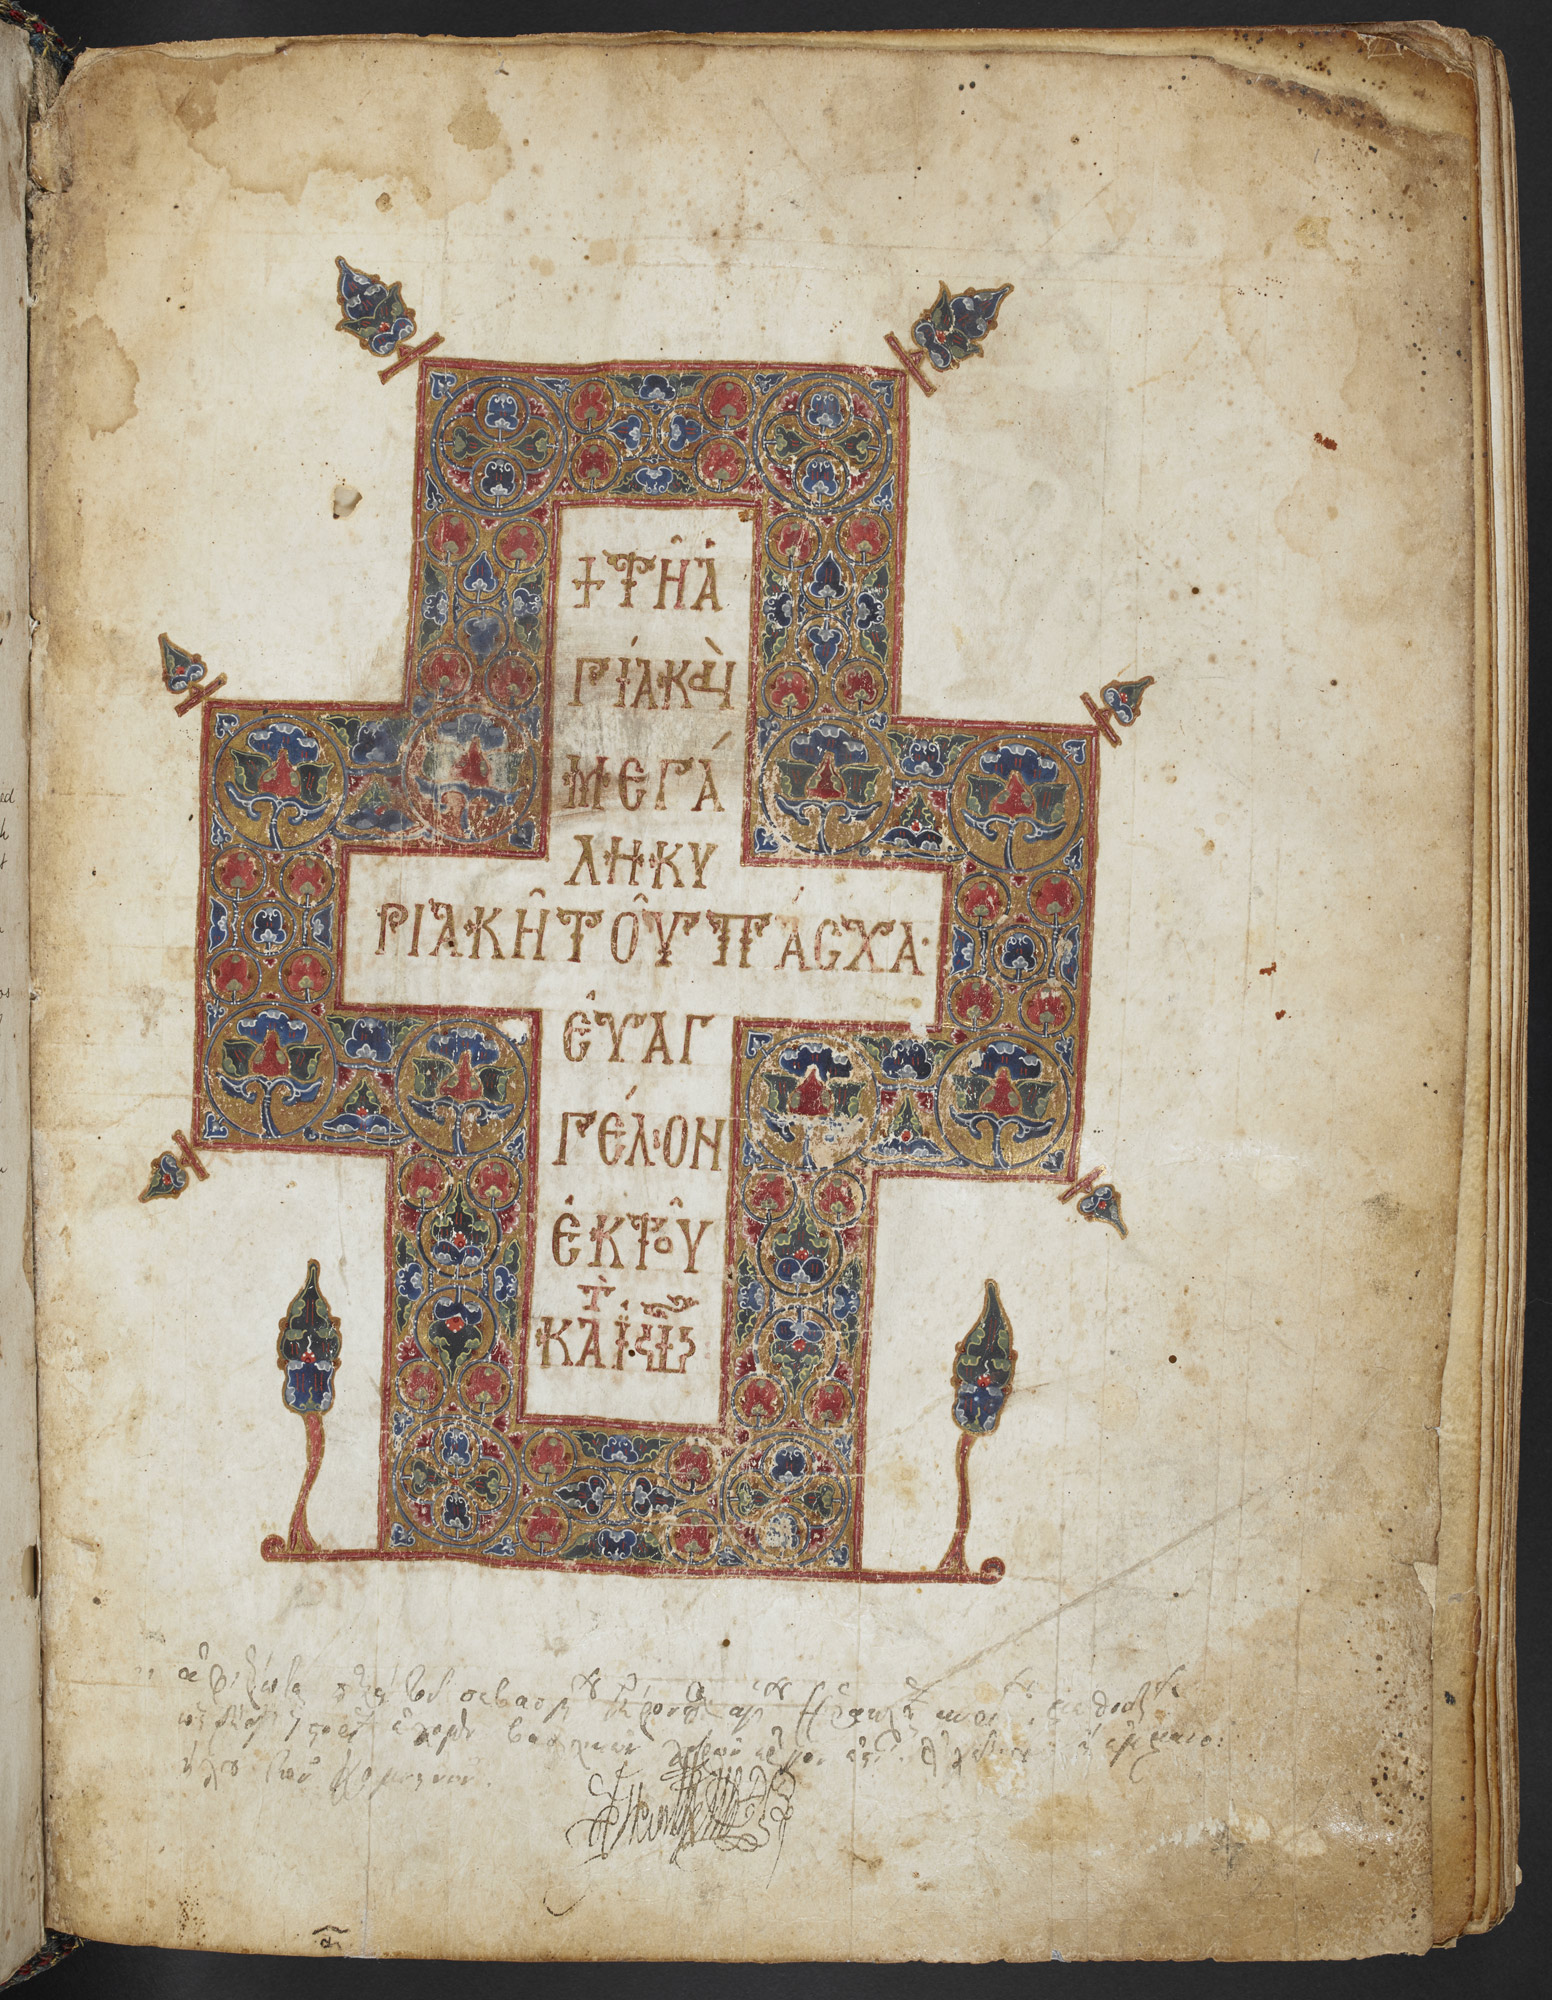 The Curzon Cruciform Lectionary (Add MS 39603 f001r)